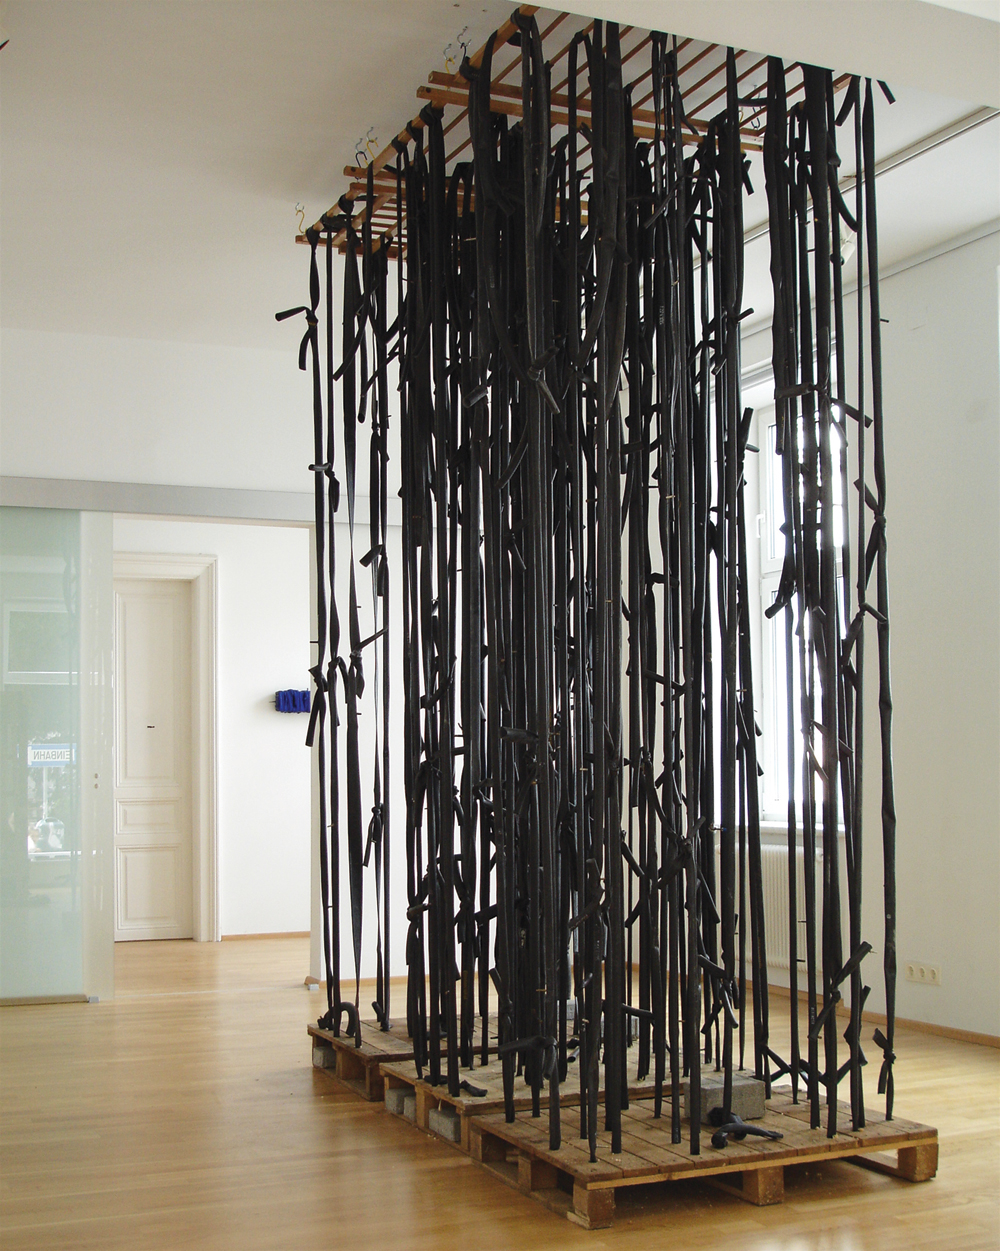 "Gregory Coates, Strut (Vienna), 2006, rubber and wood installation, 48"" x 150"" x 170."" Courtesy of Gallery Denkraum, Vienna, Austria."